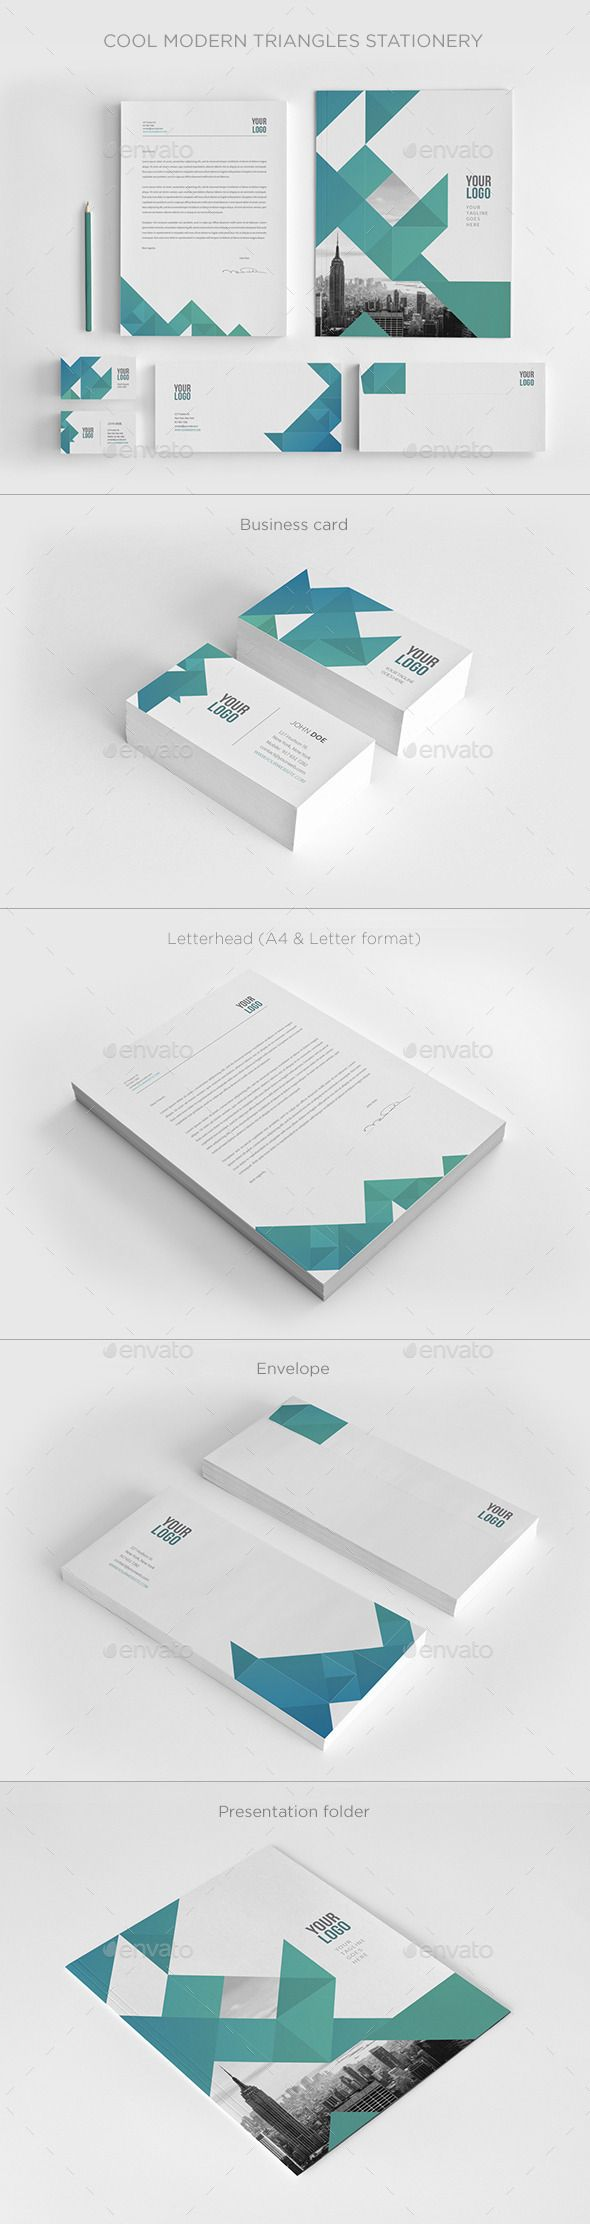 Beste Best Aussehendes Lebenslauf Design Bilder - Entry Level Resume ...